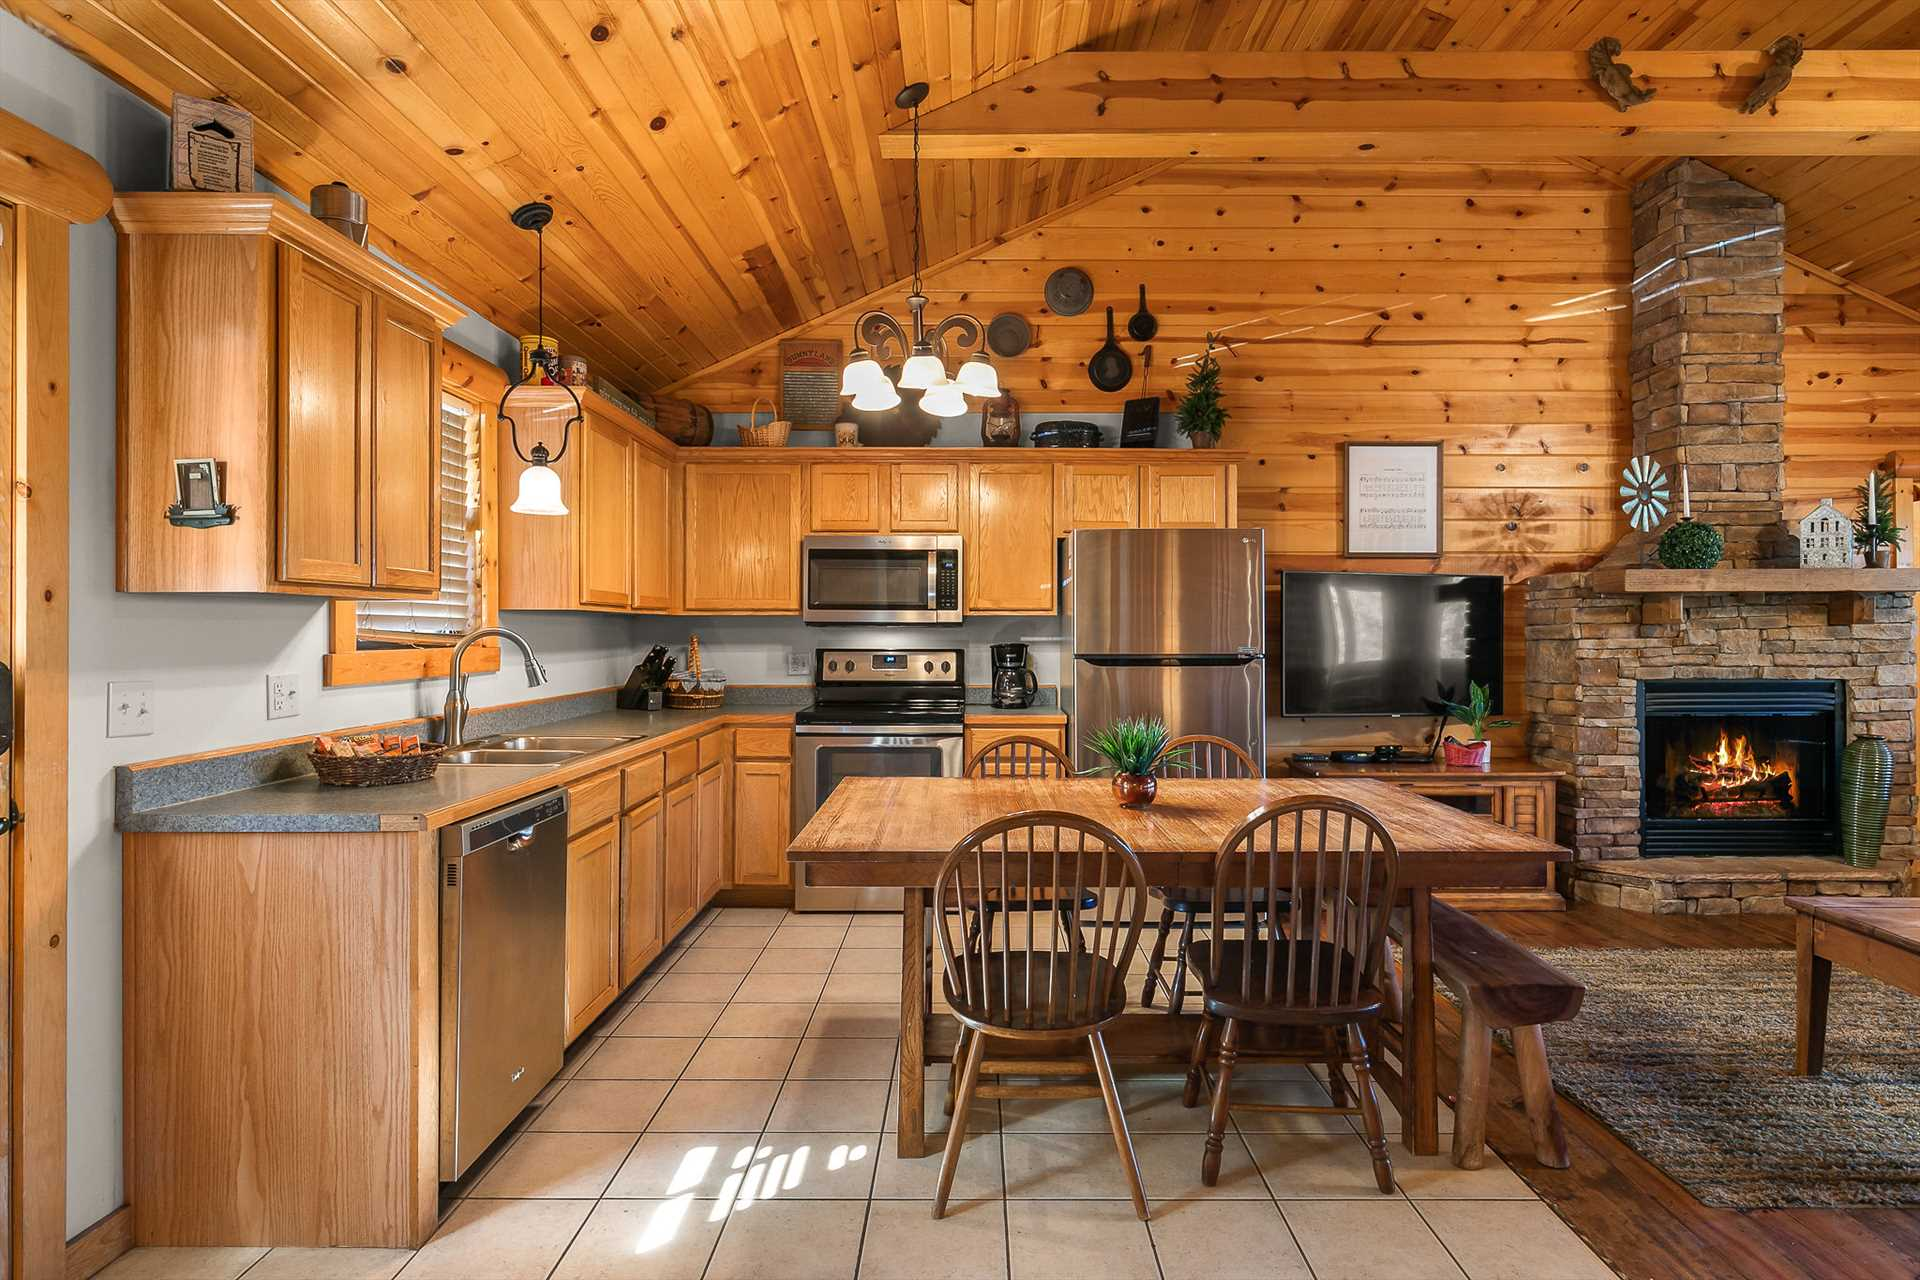 The fully-equipped kitchen comes with everything you need to